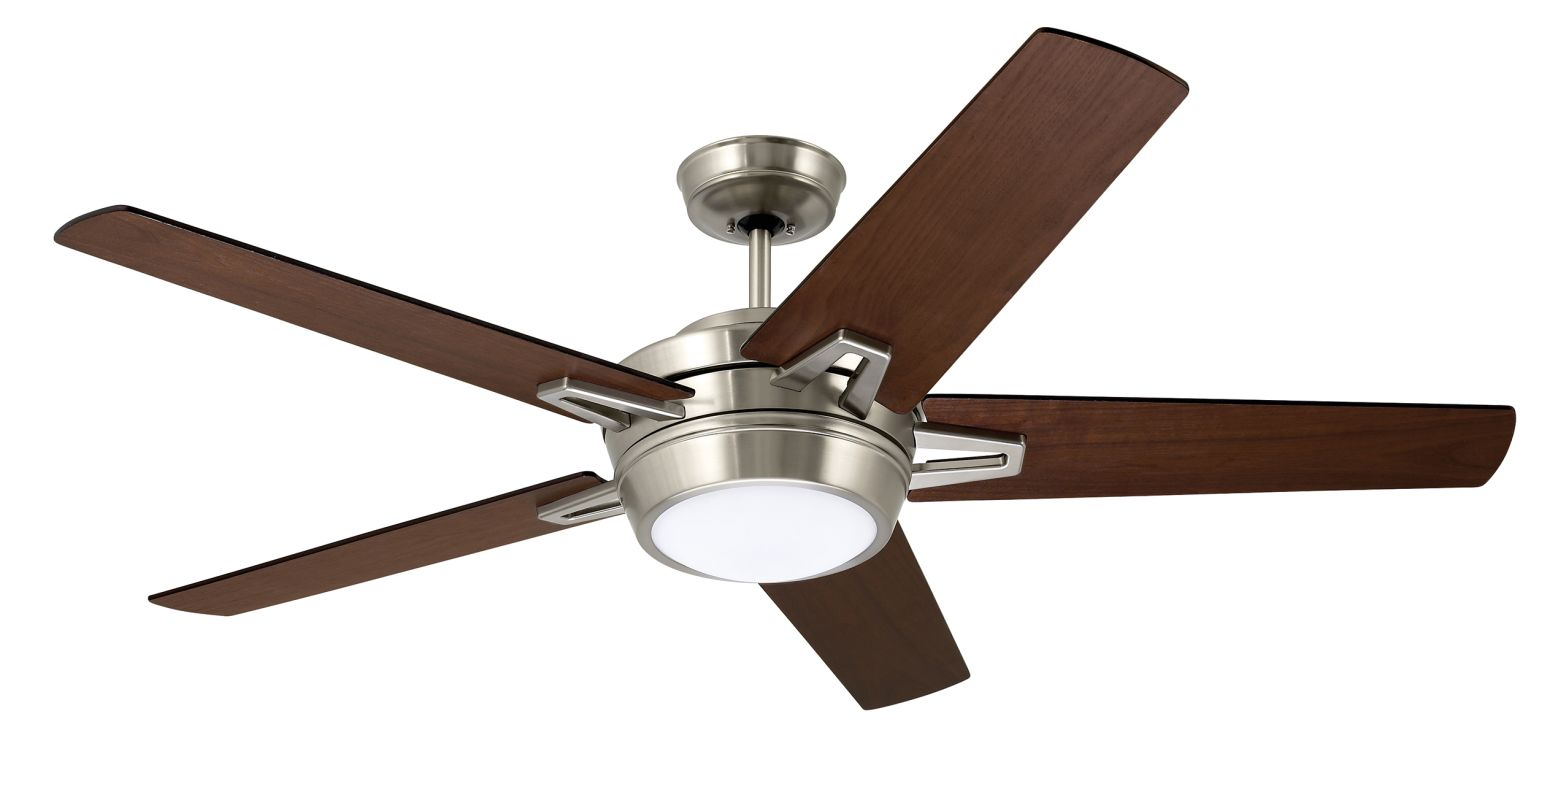 """Emerson CF4900 Southtowne 54"""" 5 Blade Ceiling Fan - Blades and Light"""